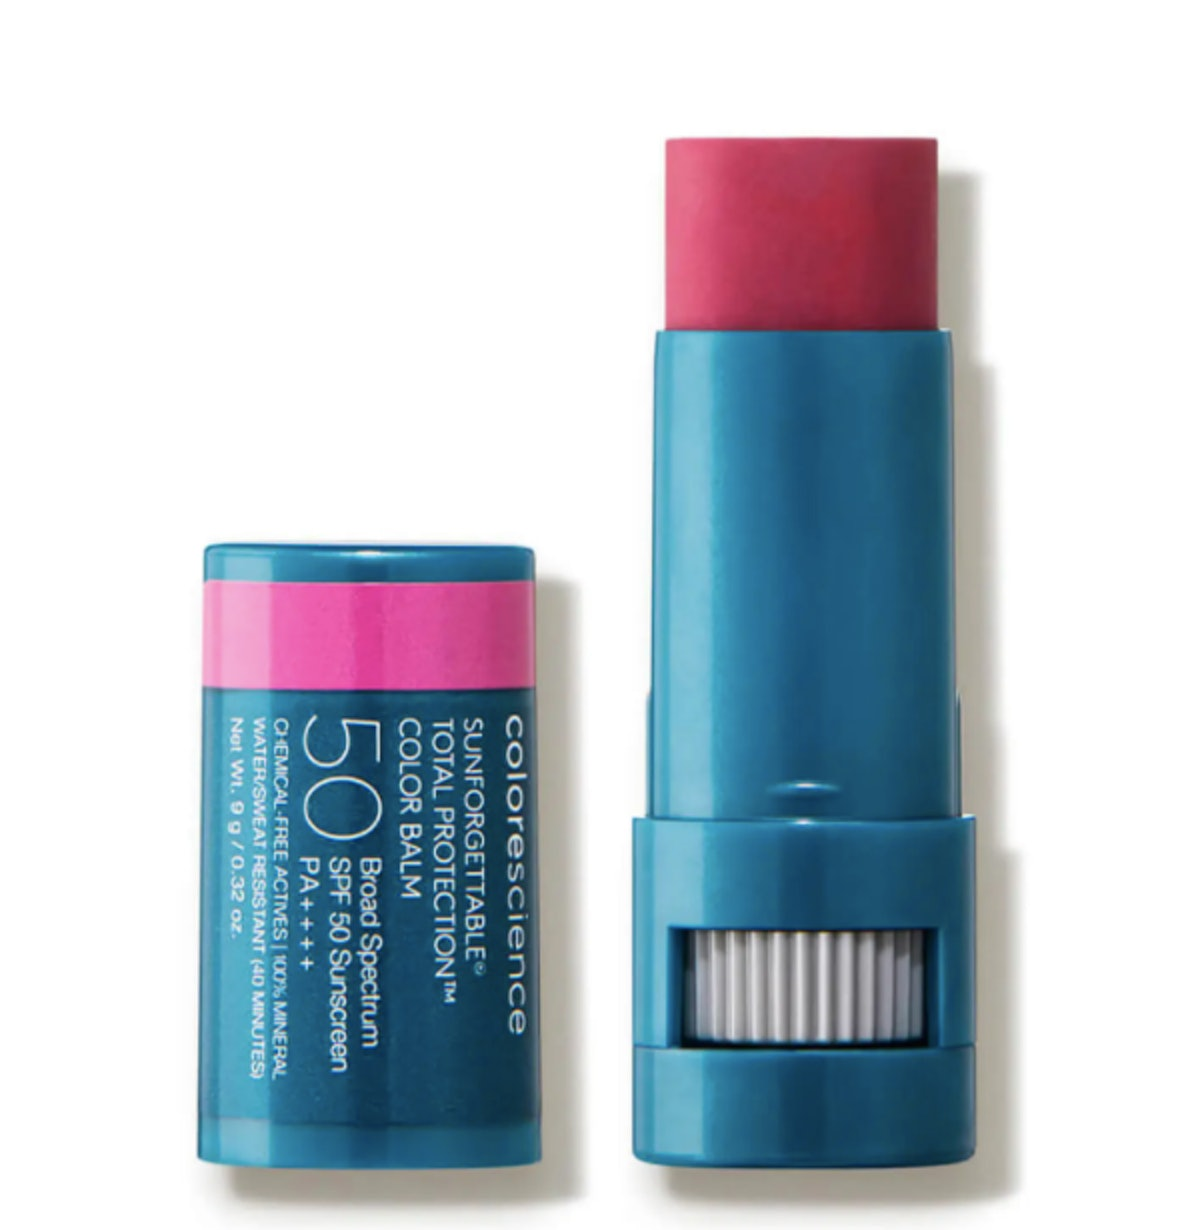 Sunforgettable® Total Protection™ Color Balm